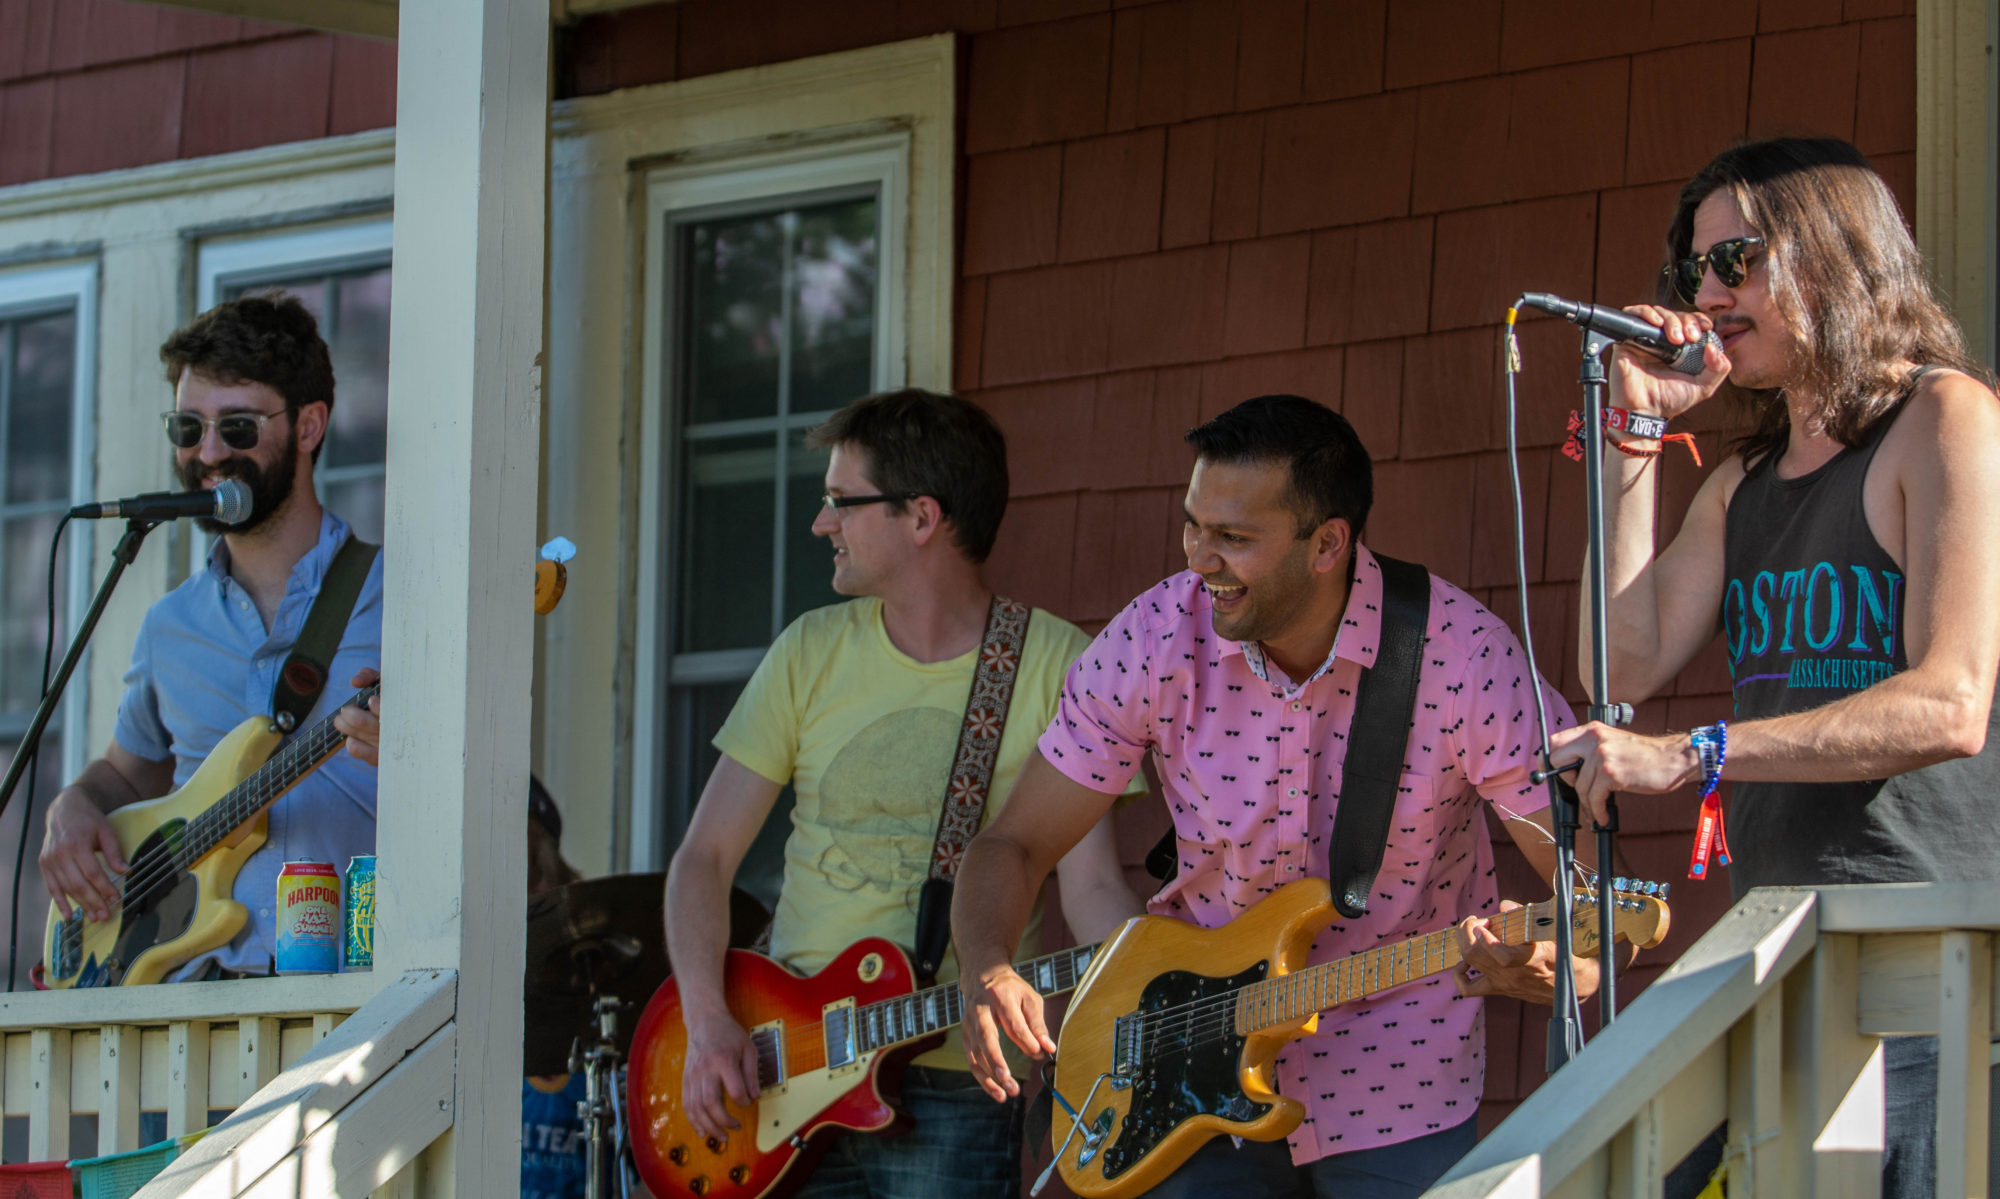 Arlington Porchfest: June 7, 2020